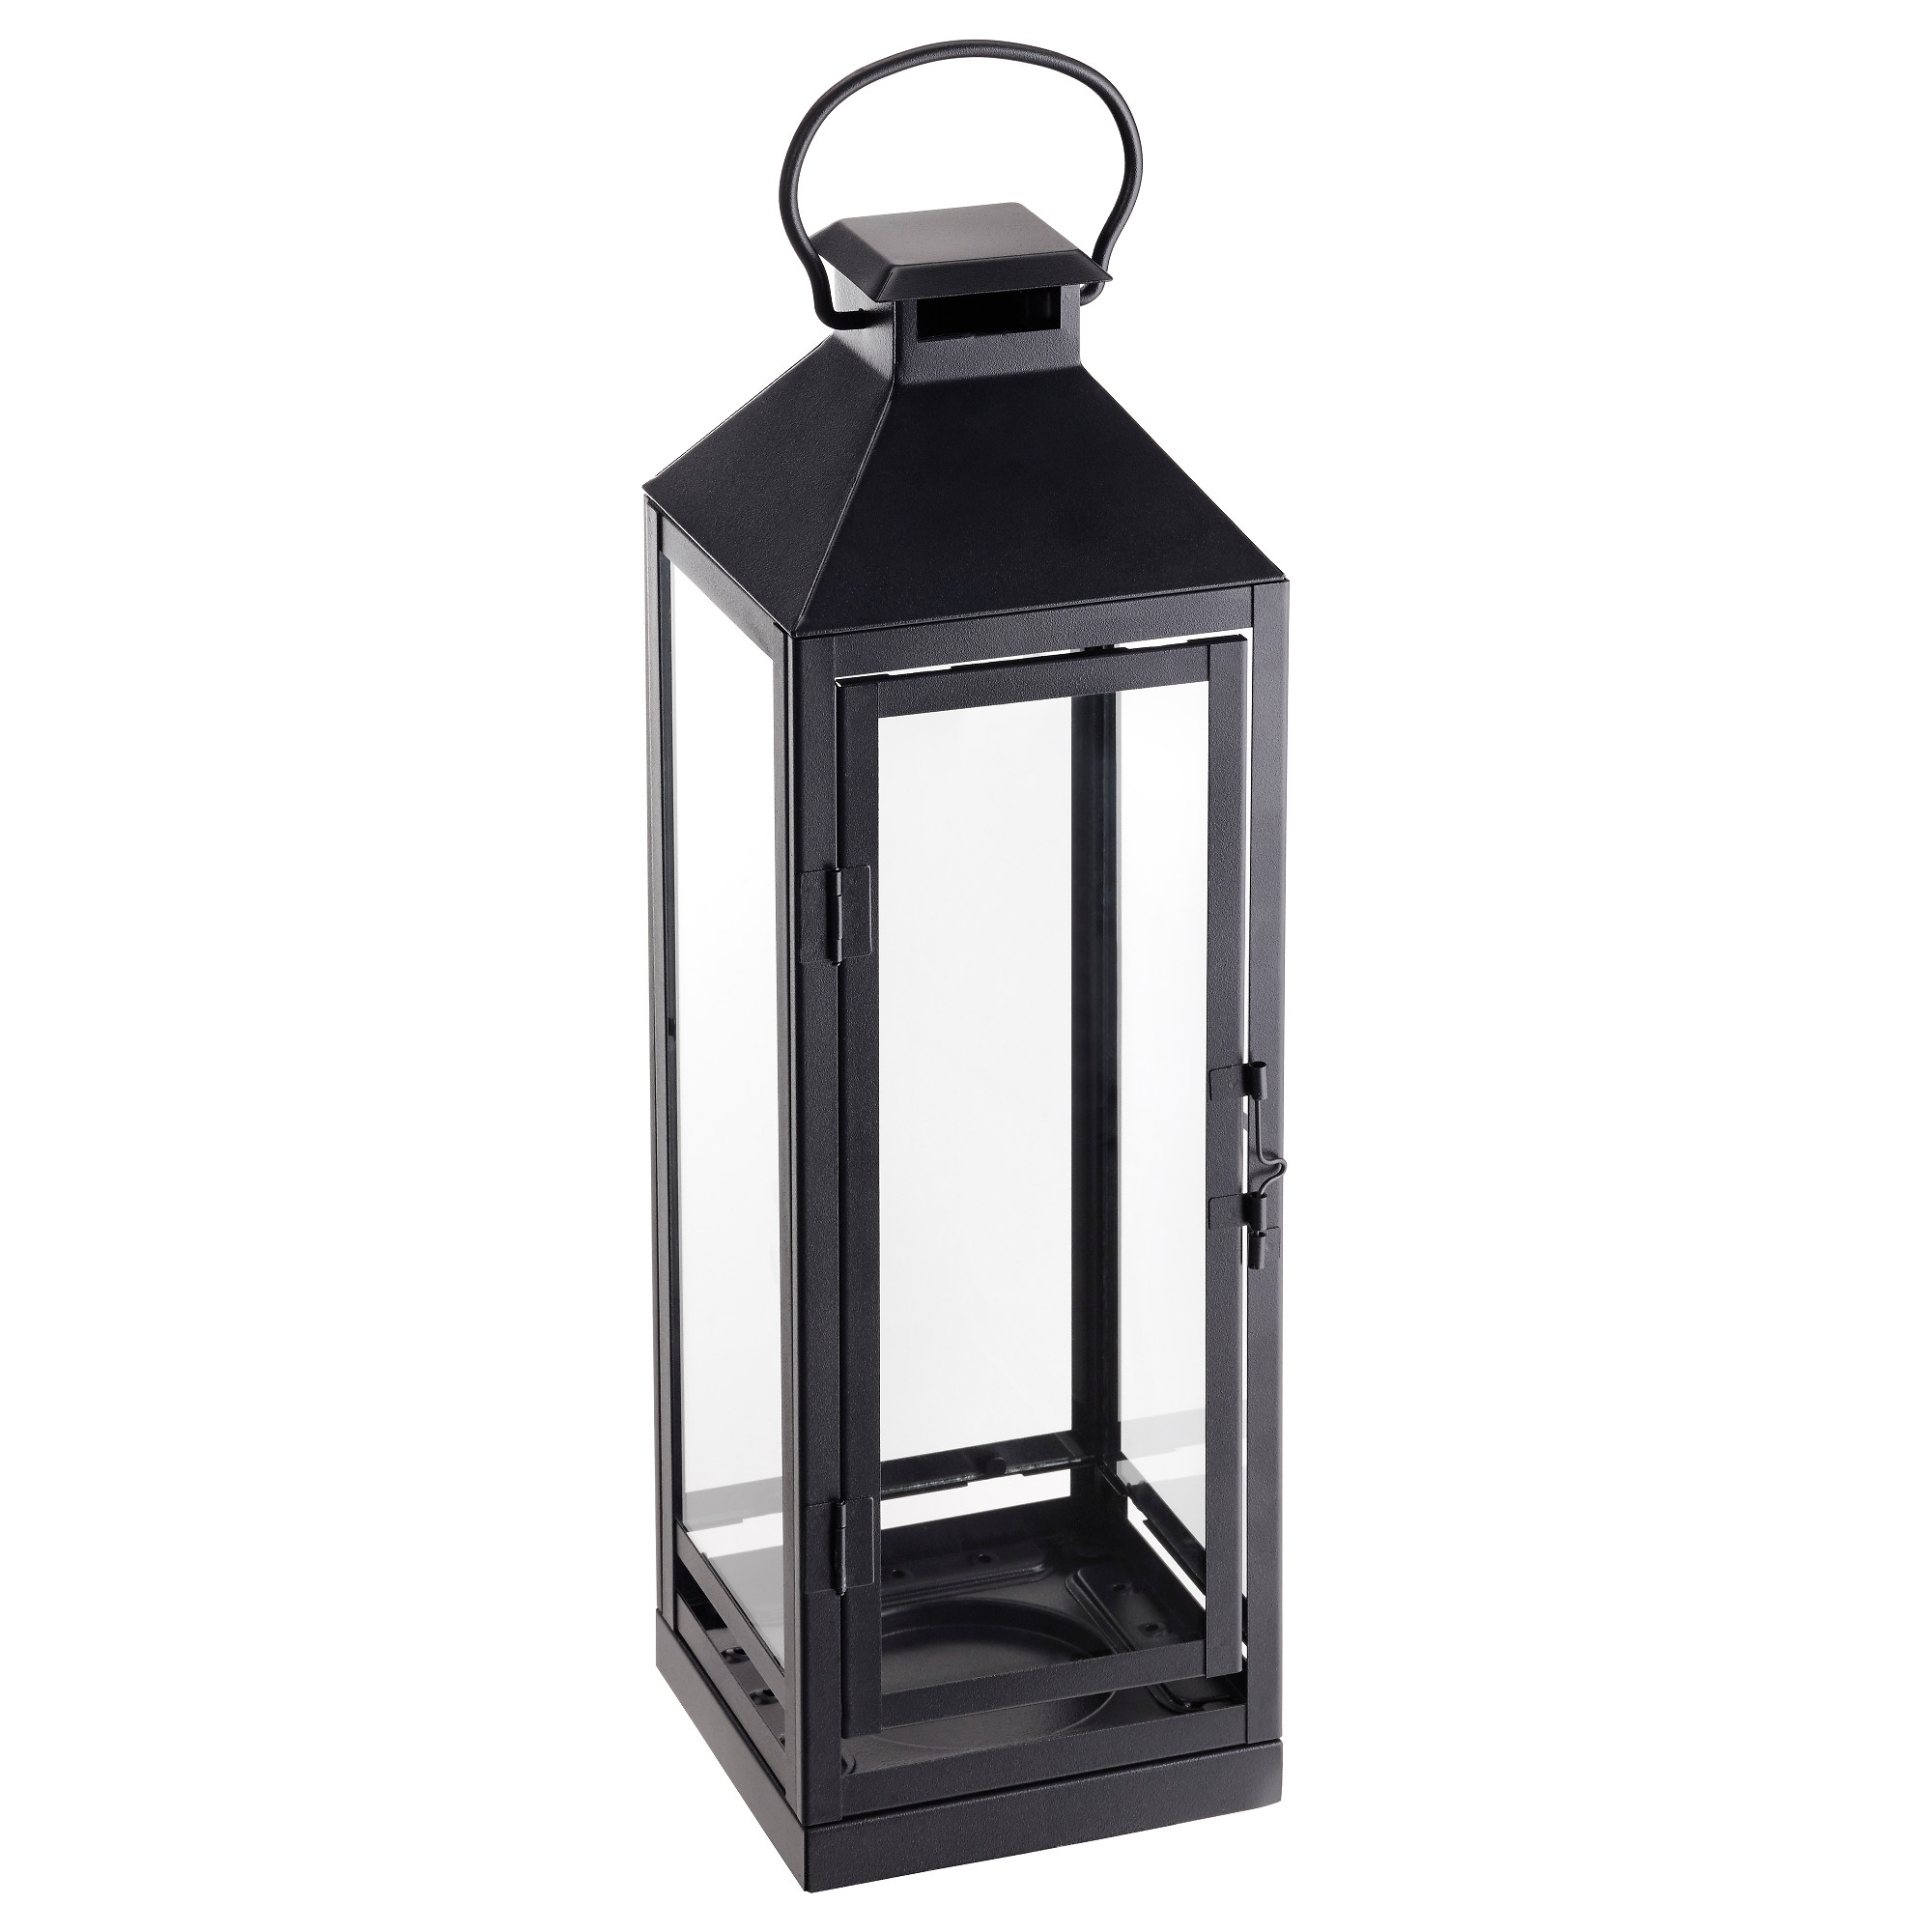 Outdoor Metal Lanterns For Candles Inside Well Known Ikea Lithuania – Shop For Furniture, Lighting, Home Accessories & More (Gallery 16 of 20)